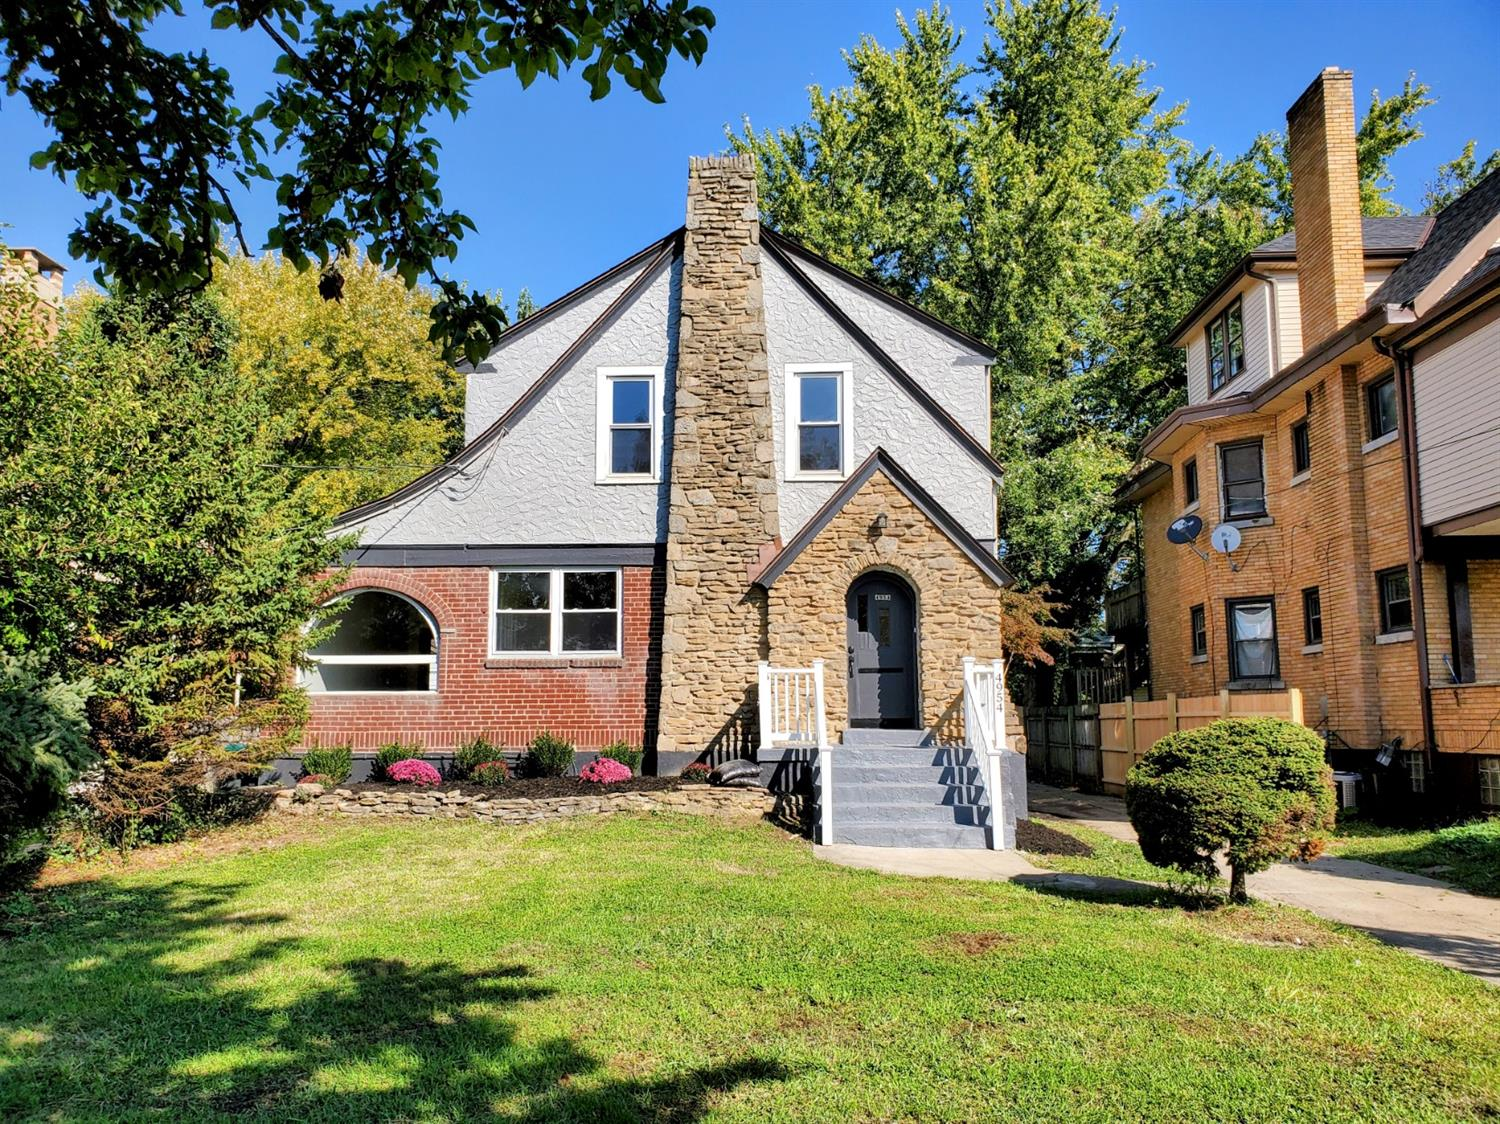 4954 Cleves Warsaw Pike, Cincinnati, Ohio 45238, 4 Bedrooms Bedrooms, 9 Rooms Rooms,2 BathroomsBathrooms,Single Family Residence,For Sale,Cleves Warsaw,1718607